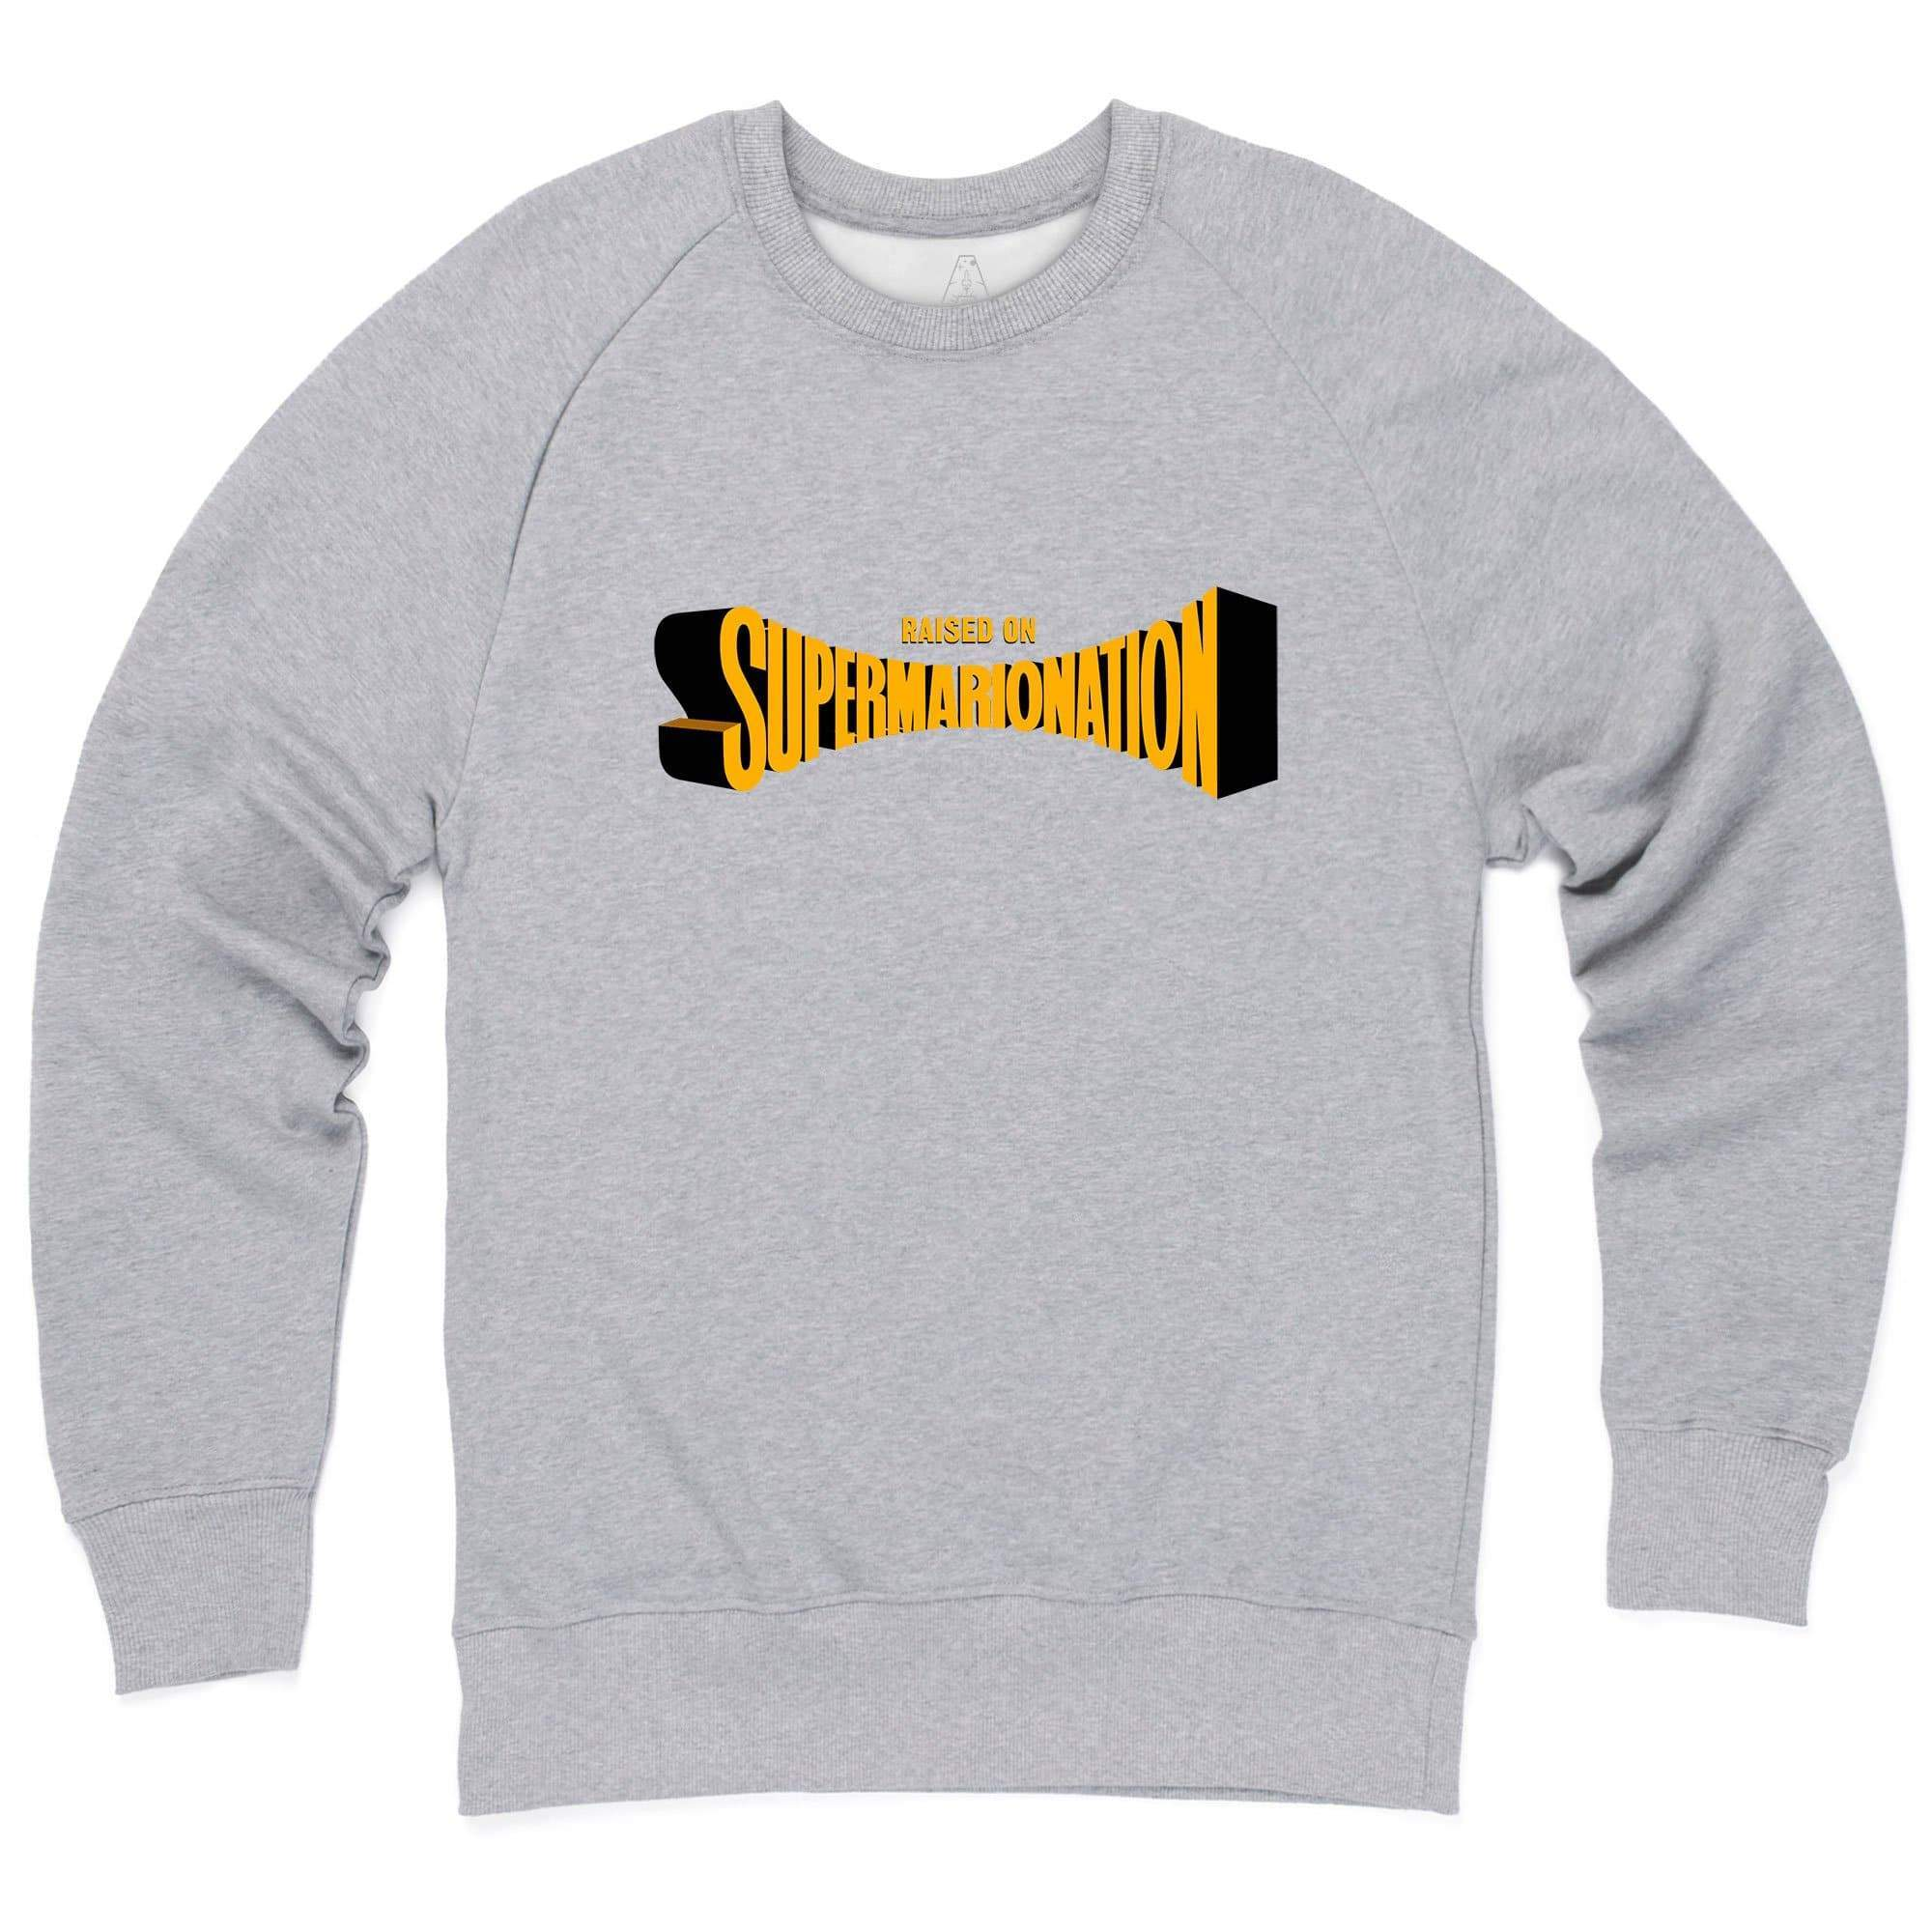 Raised on Supermarionation Sweatshirt [Official & Exclusive] - The Gerry Anderson Store